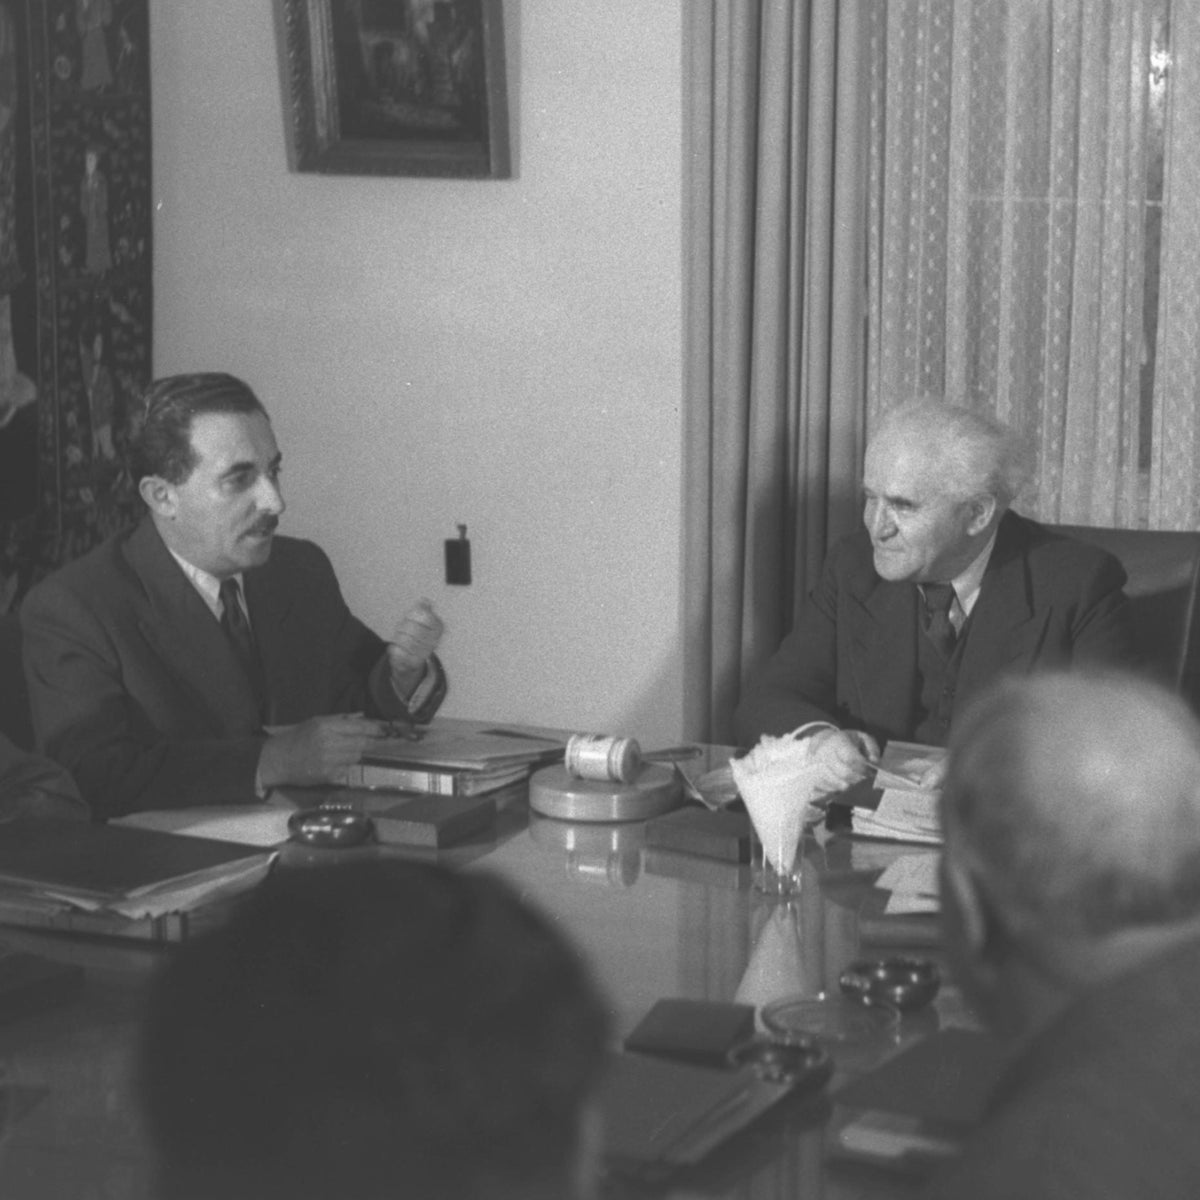 David Ben-Gurion and Moshe Sharett at a meeting of Israel's interim government in 1949.